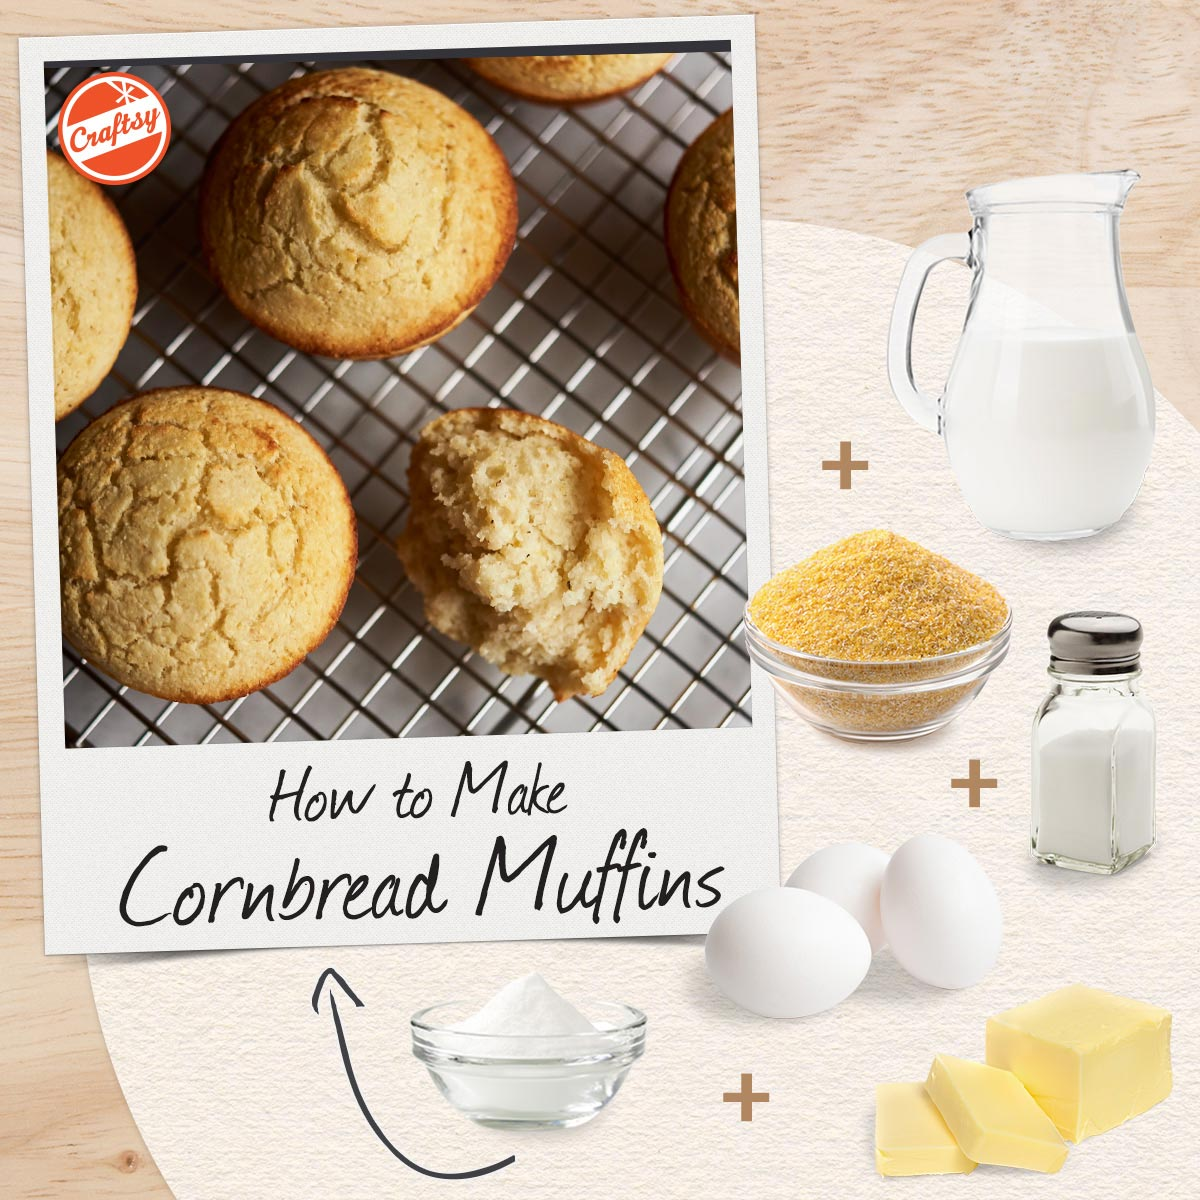 Ingredients for Cornbread Muffins Recipe